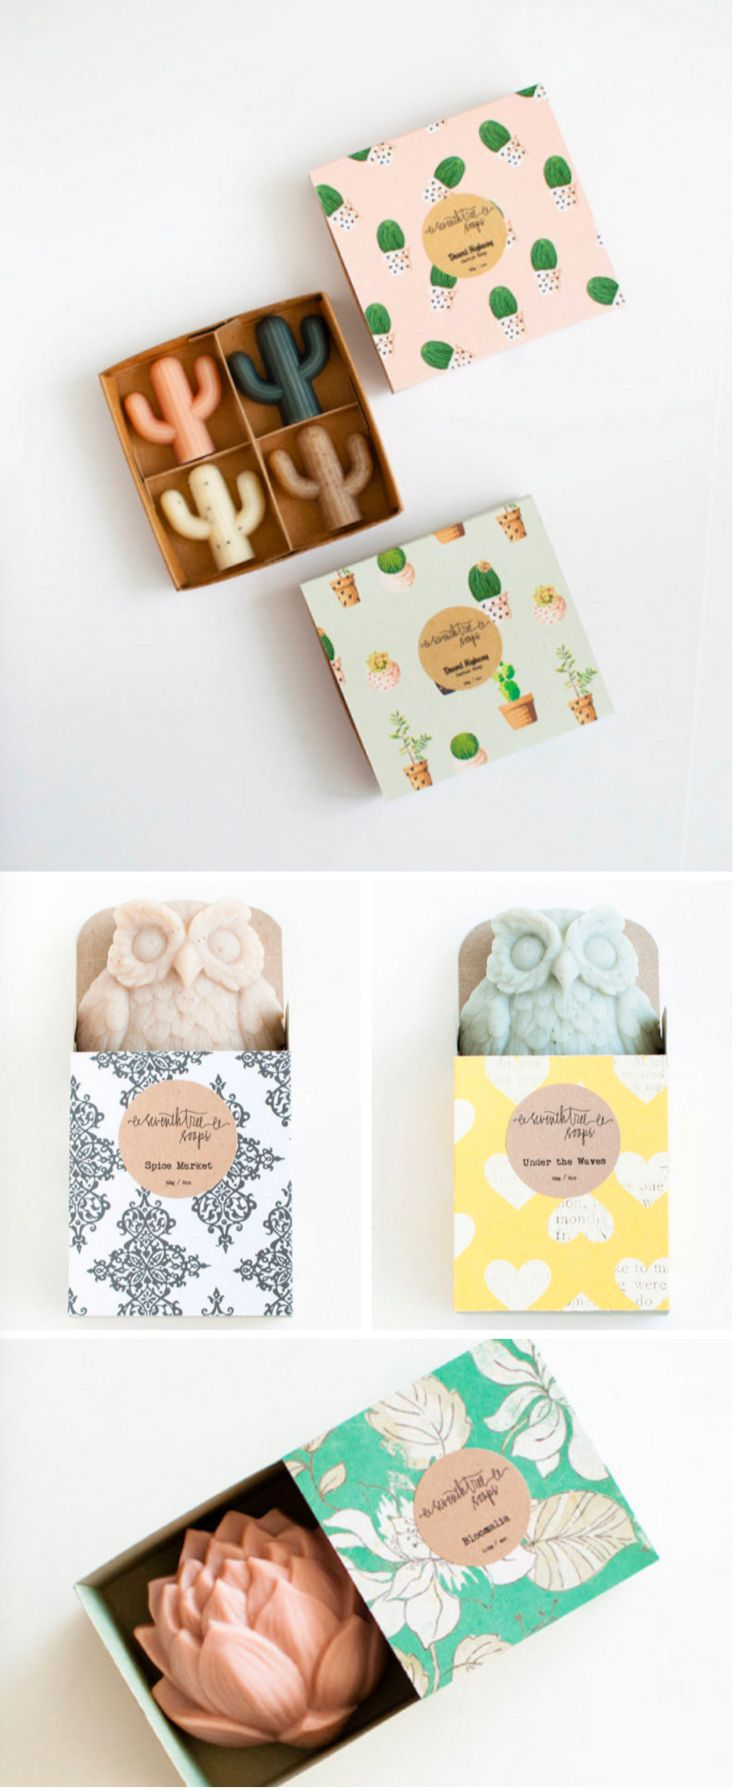 Handmade Cactus Soaps by Seventh Tree Soaps